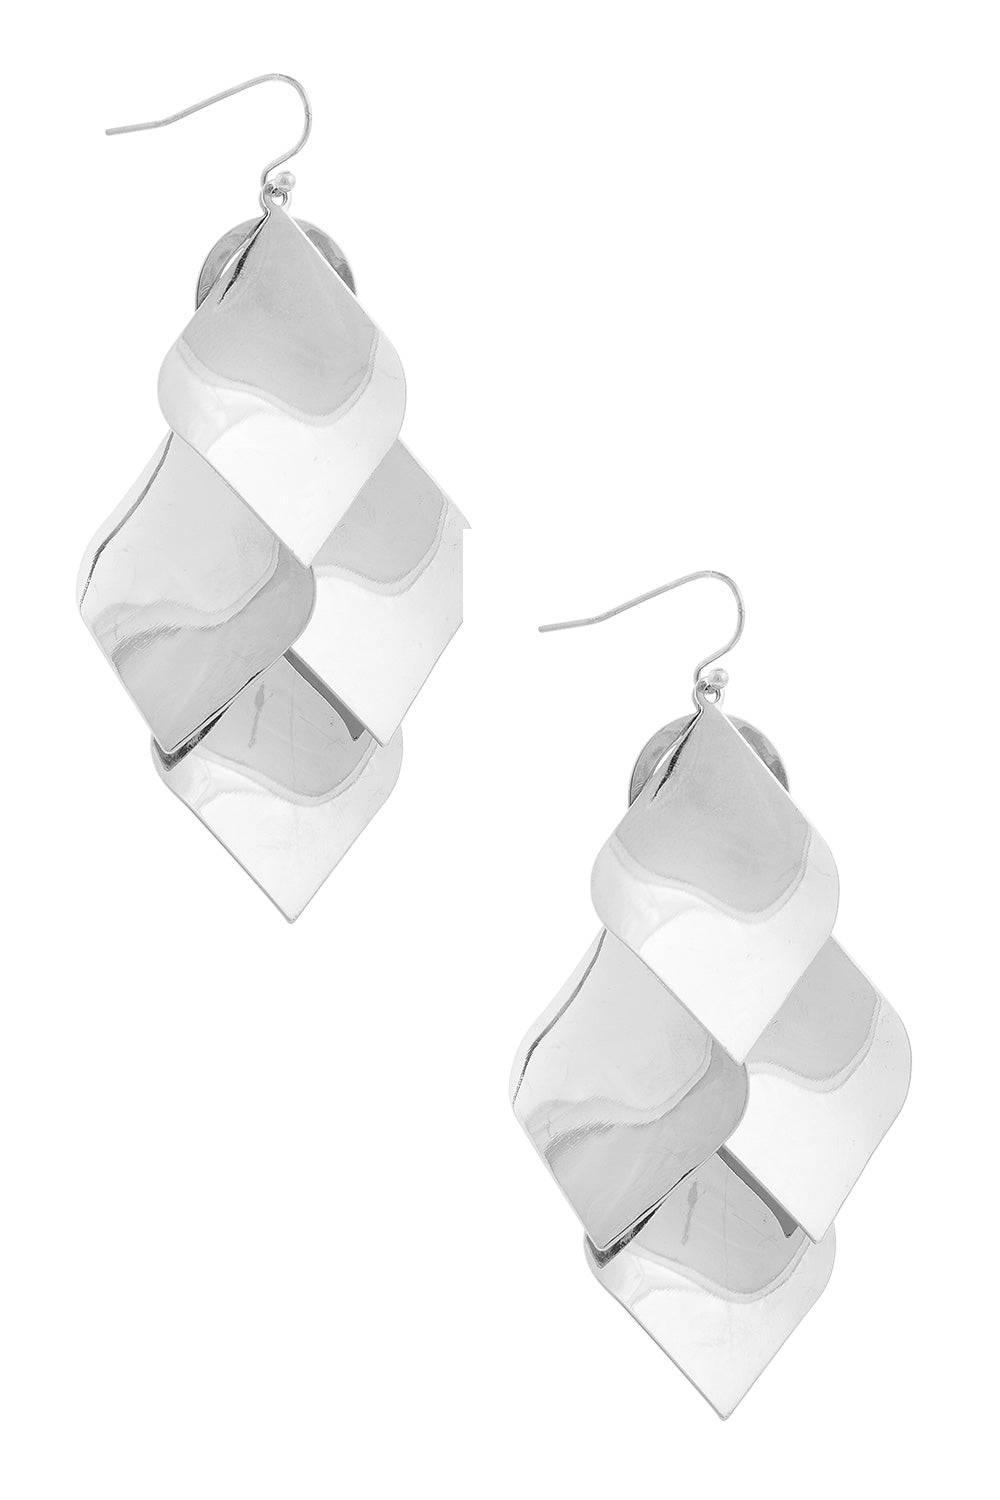 Type 4 Reflection Earrings